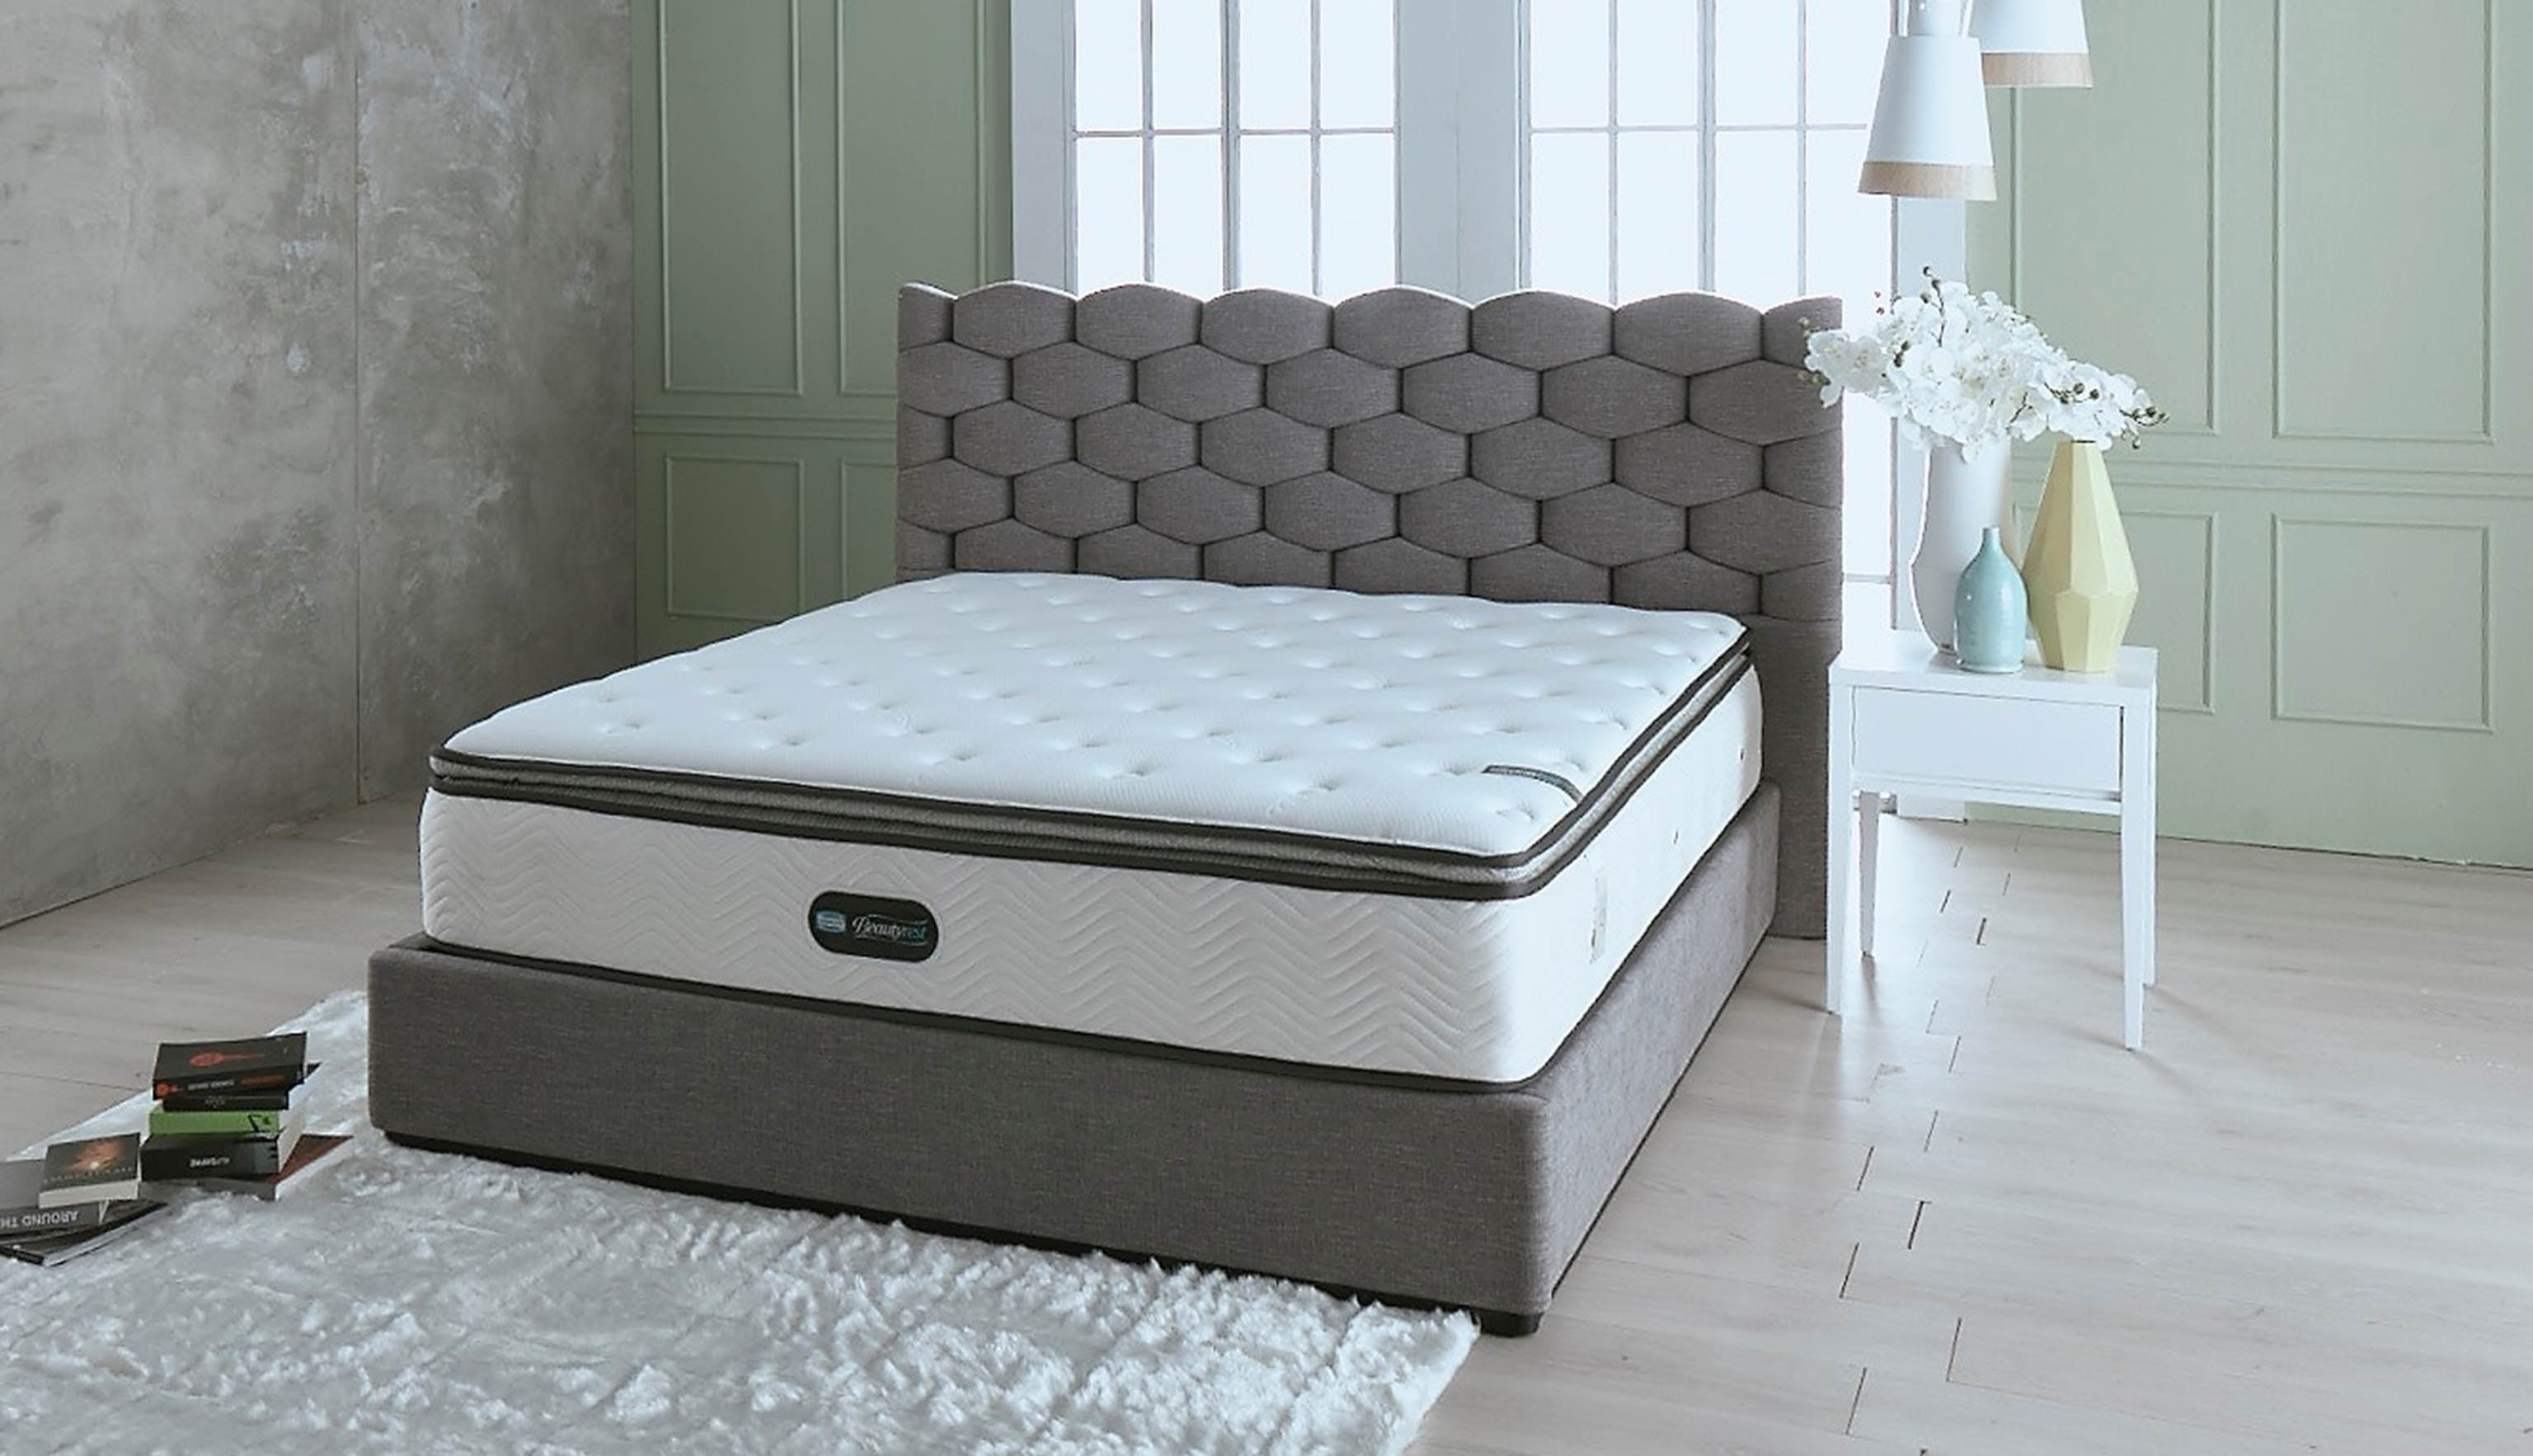 queen maddyn mattress plush set today shipping select overstock garden size rest beauty factory home product beautyrest free